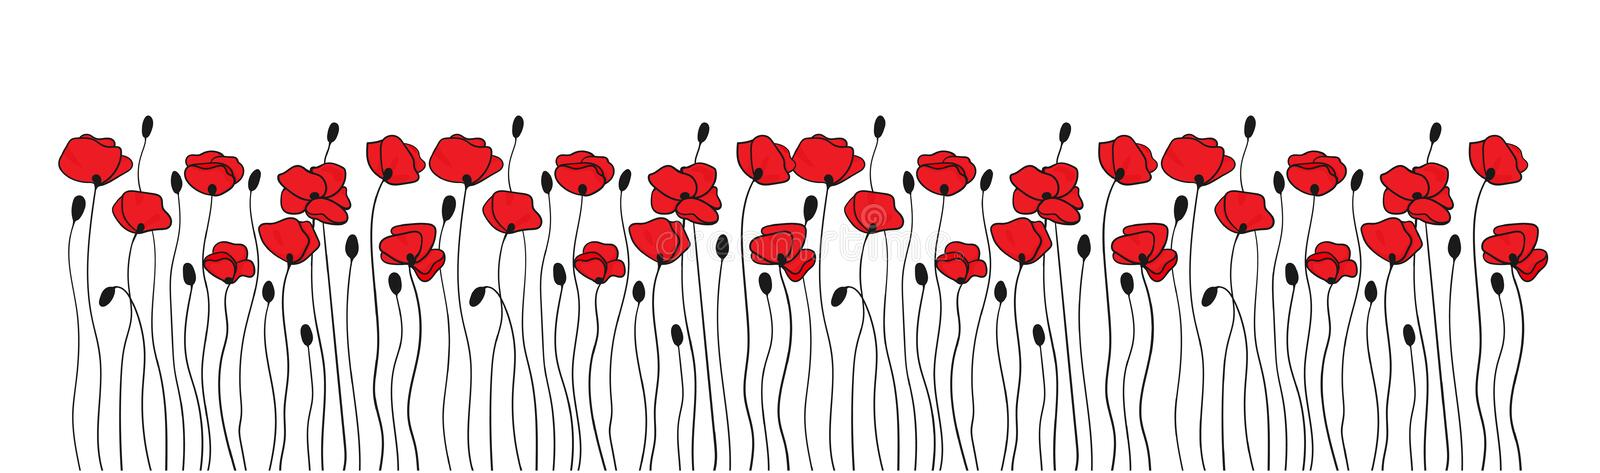 Poppy flowers and buds. Borders ornaments. Floral pattern in black and red. Vector royalty free illustration